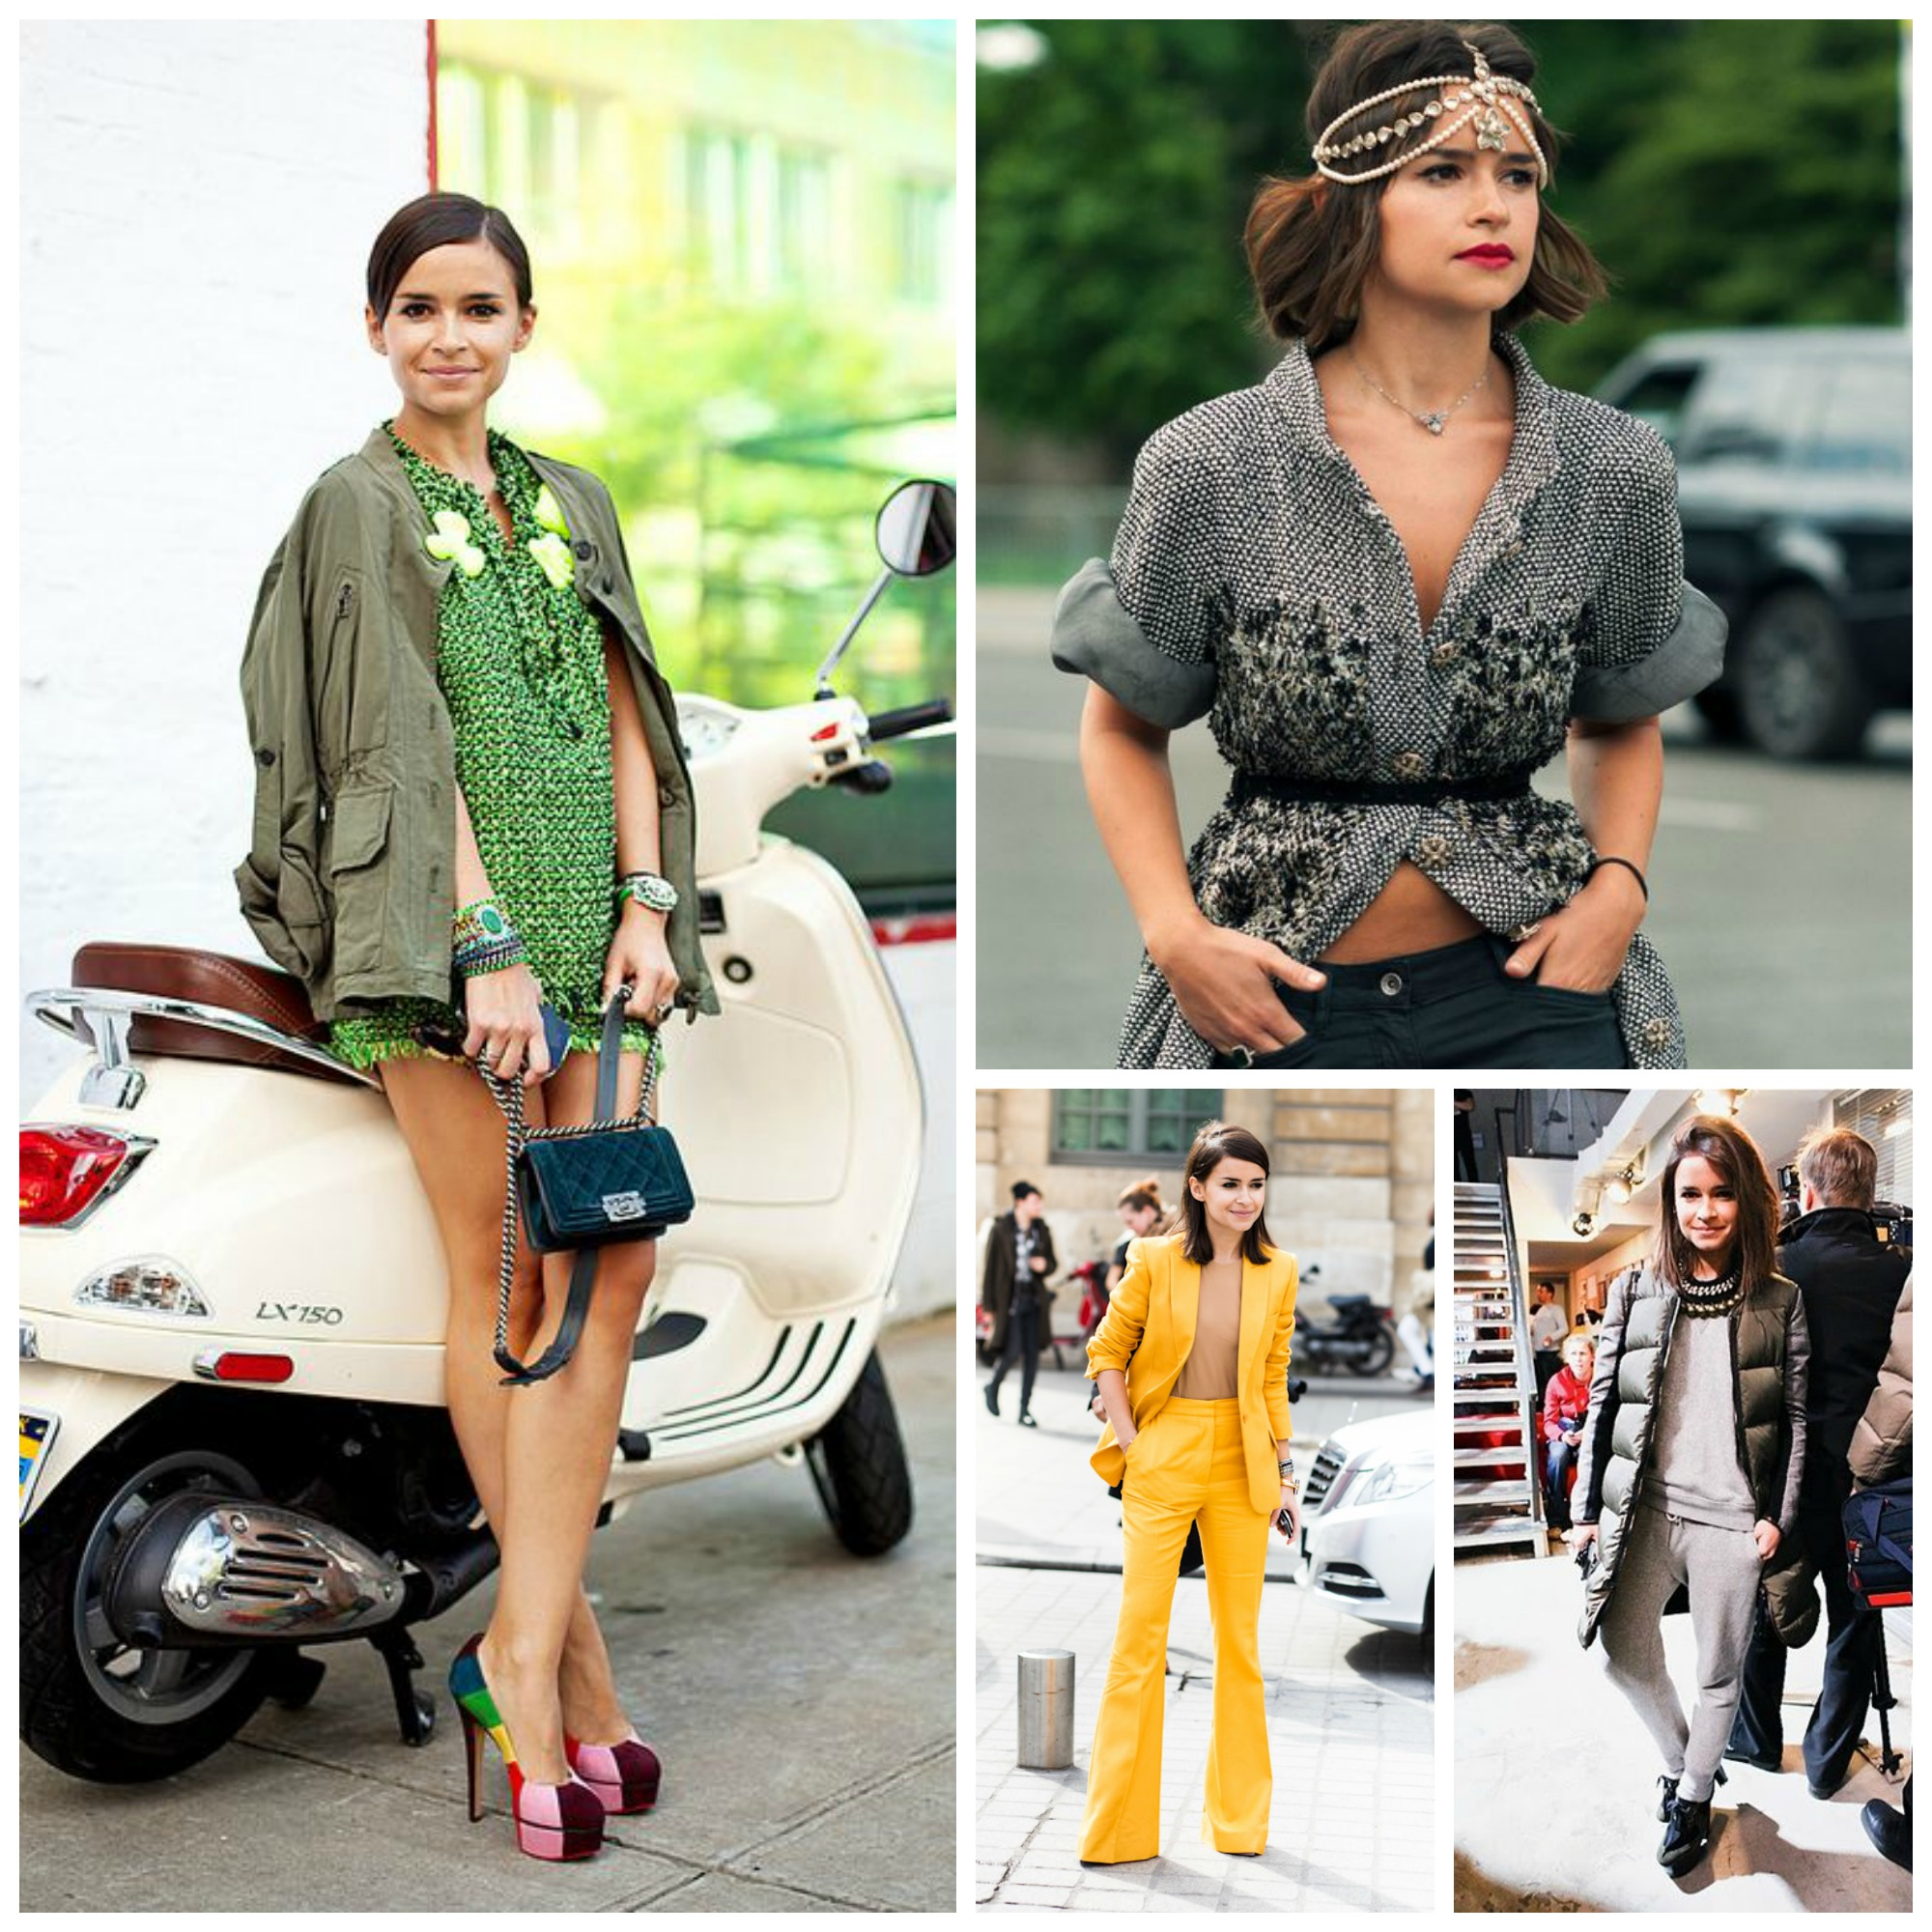 7 Style Lessons We Can Learn From Miroslava Duma